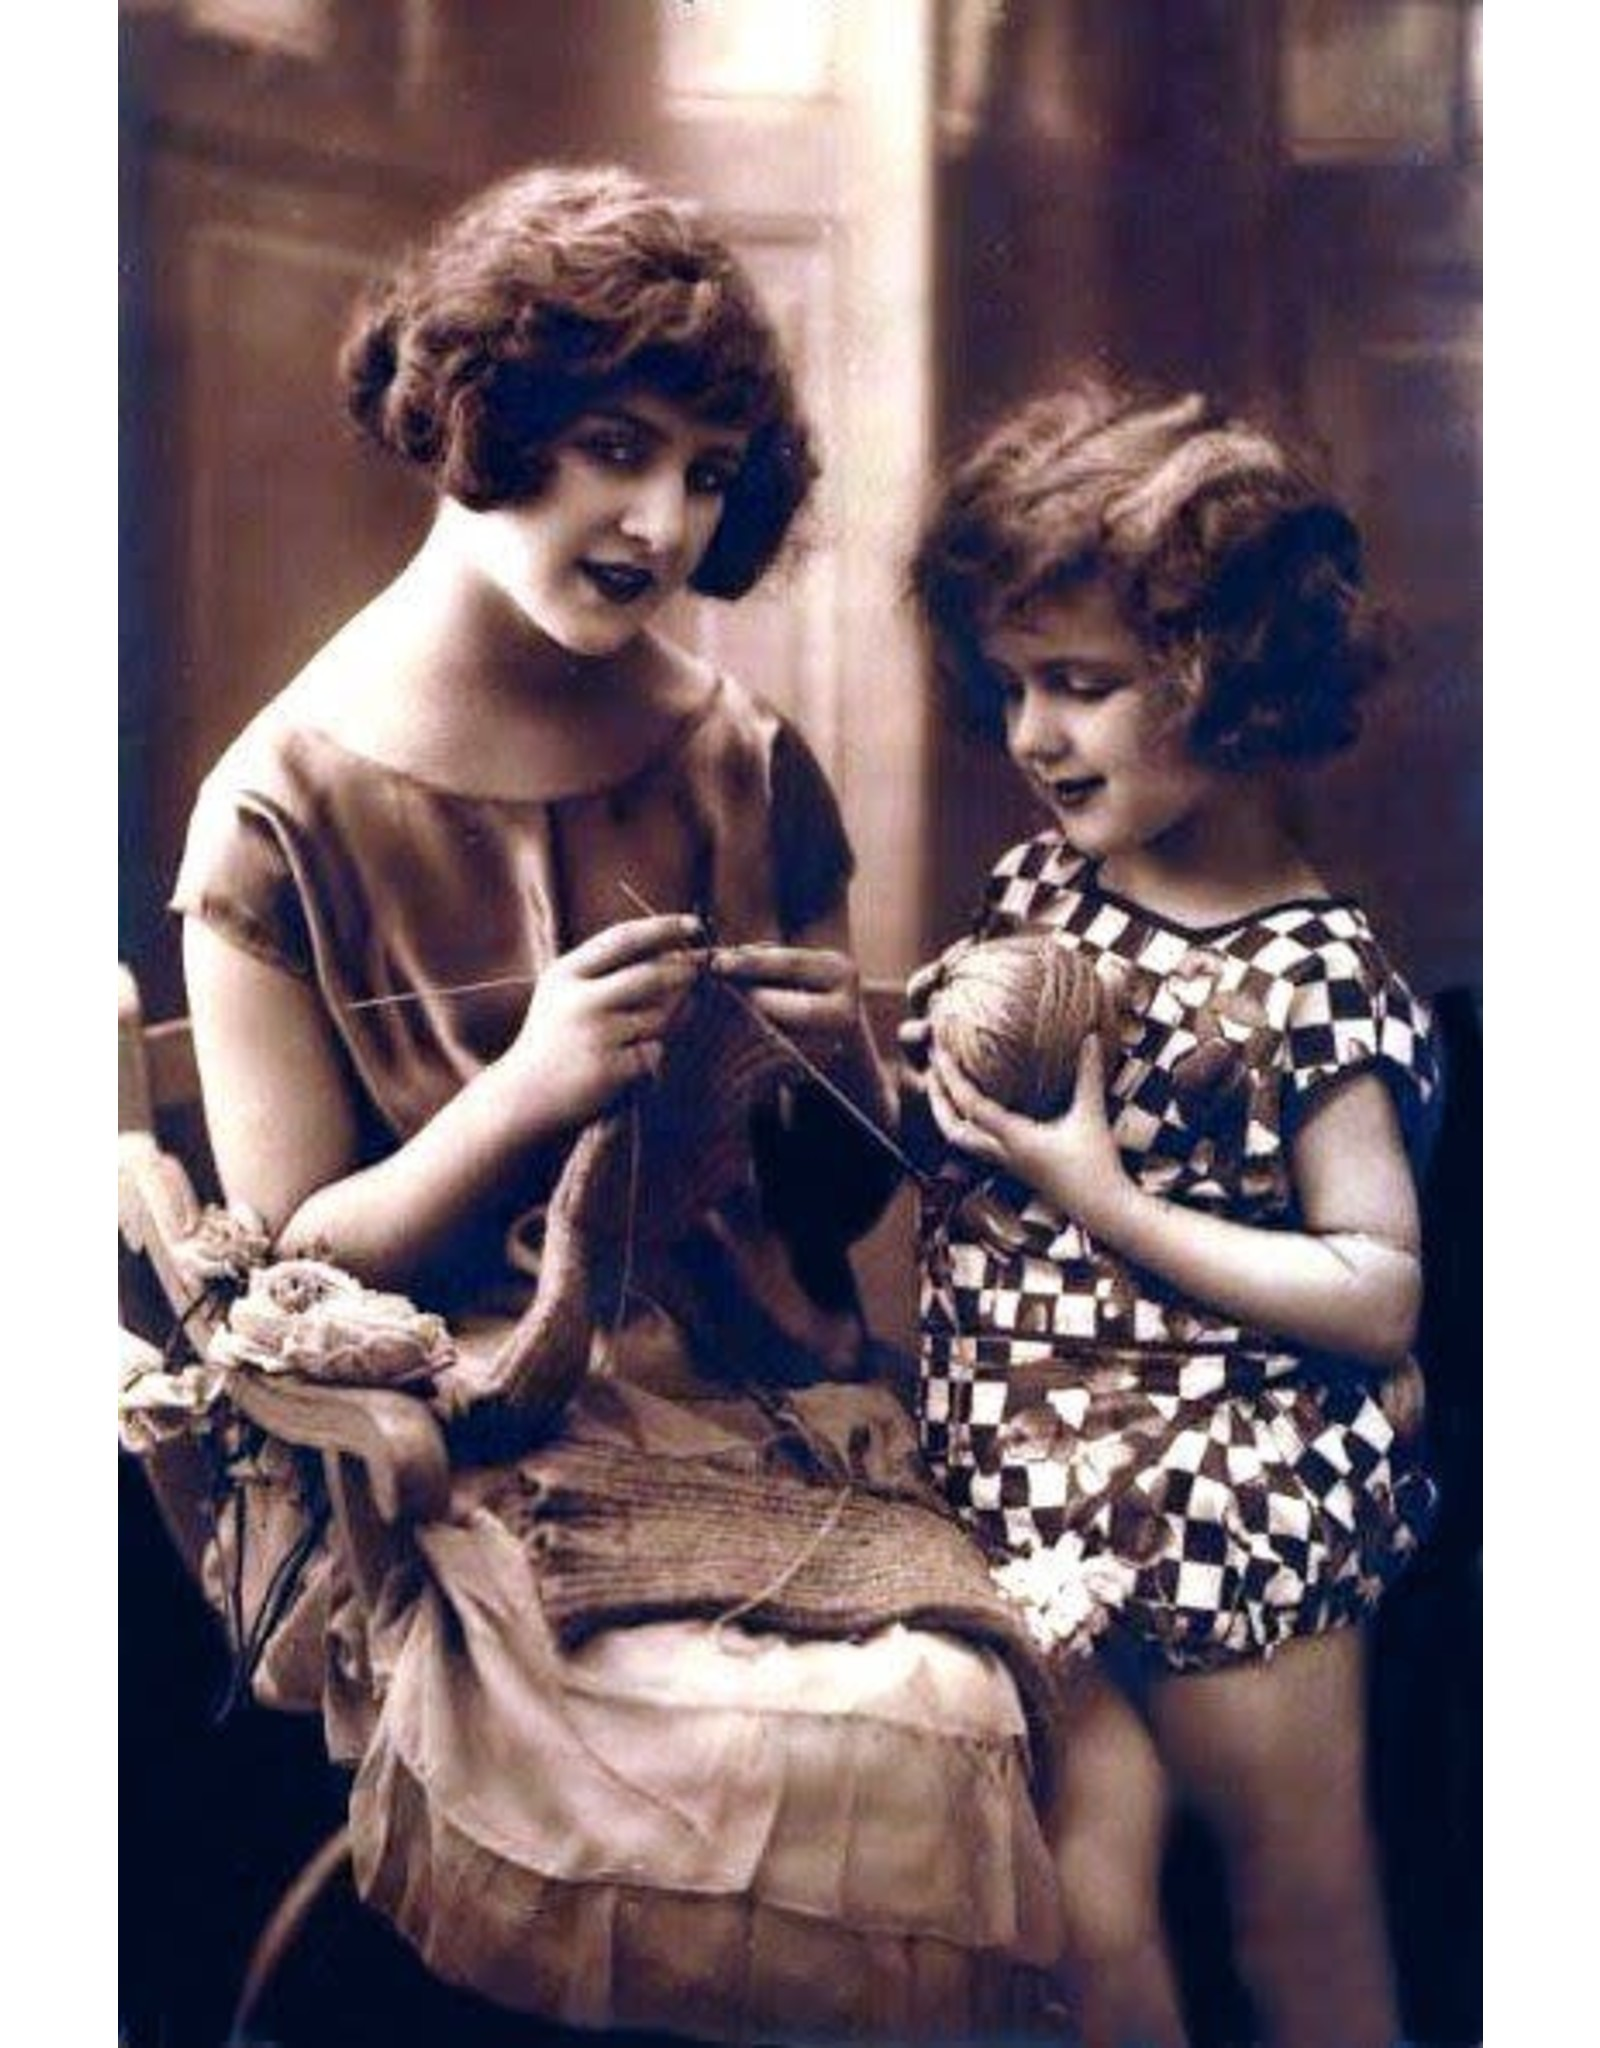 Argyle Classes 10/20 WED Open Forum Knitting Class 6 PM - 8 PM